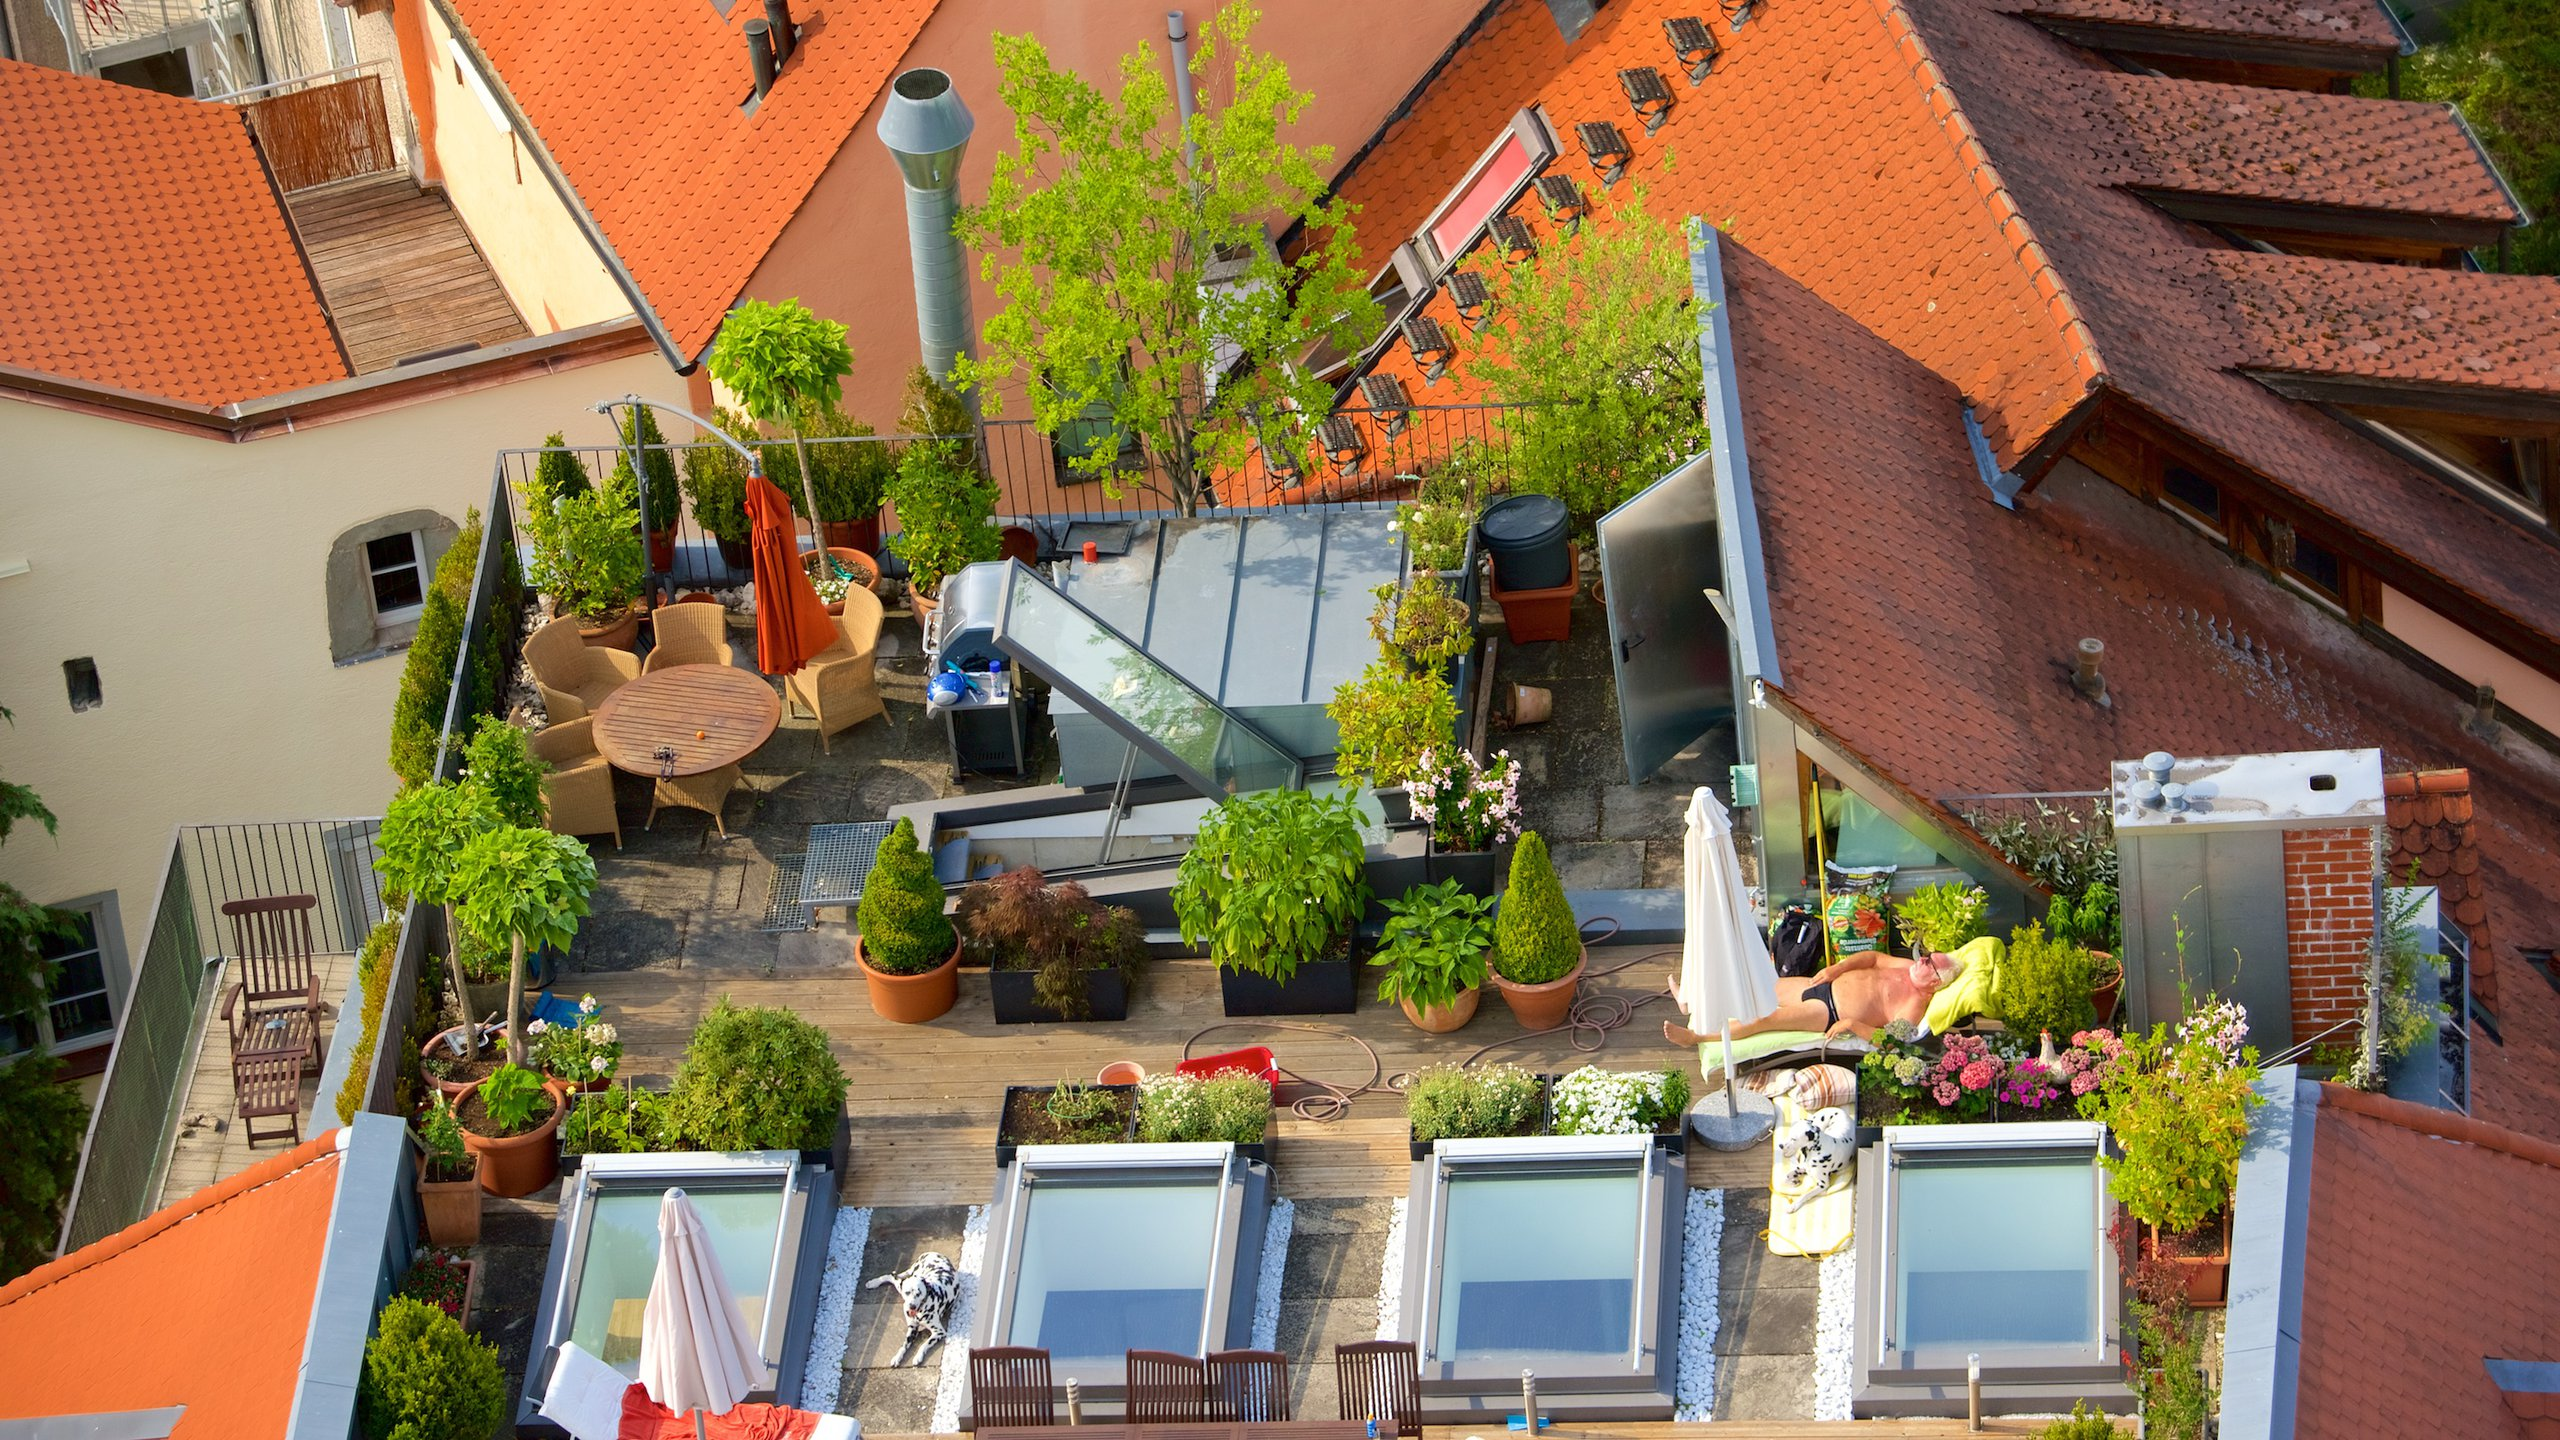 Hotels Bodensee Expedia De